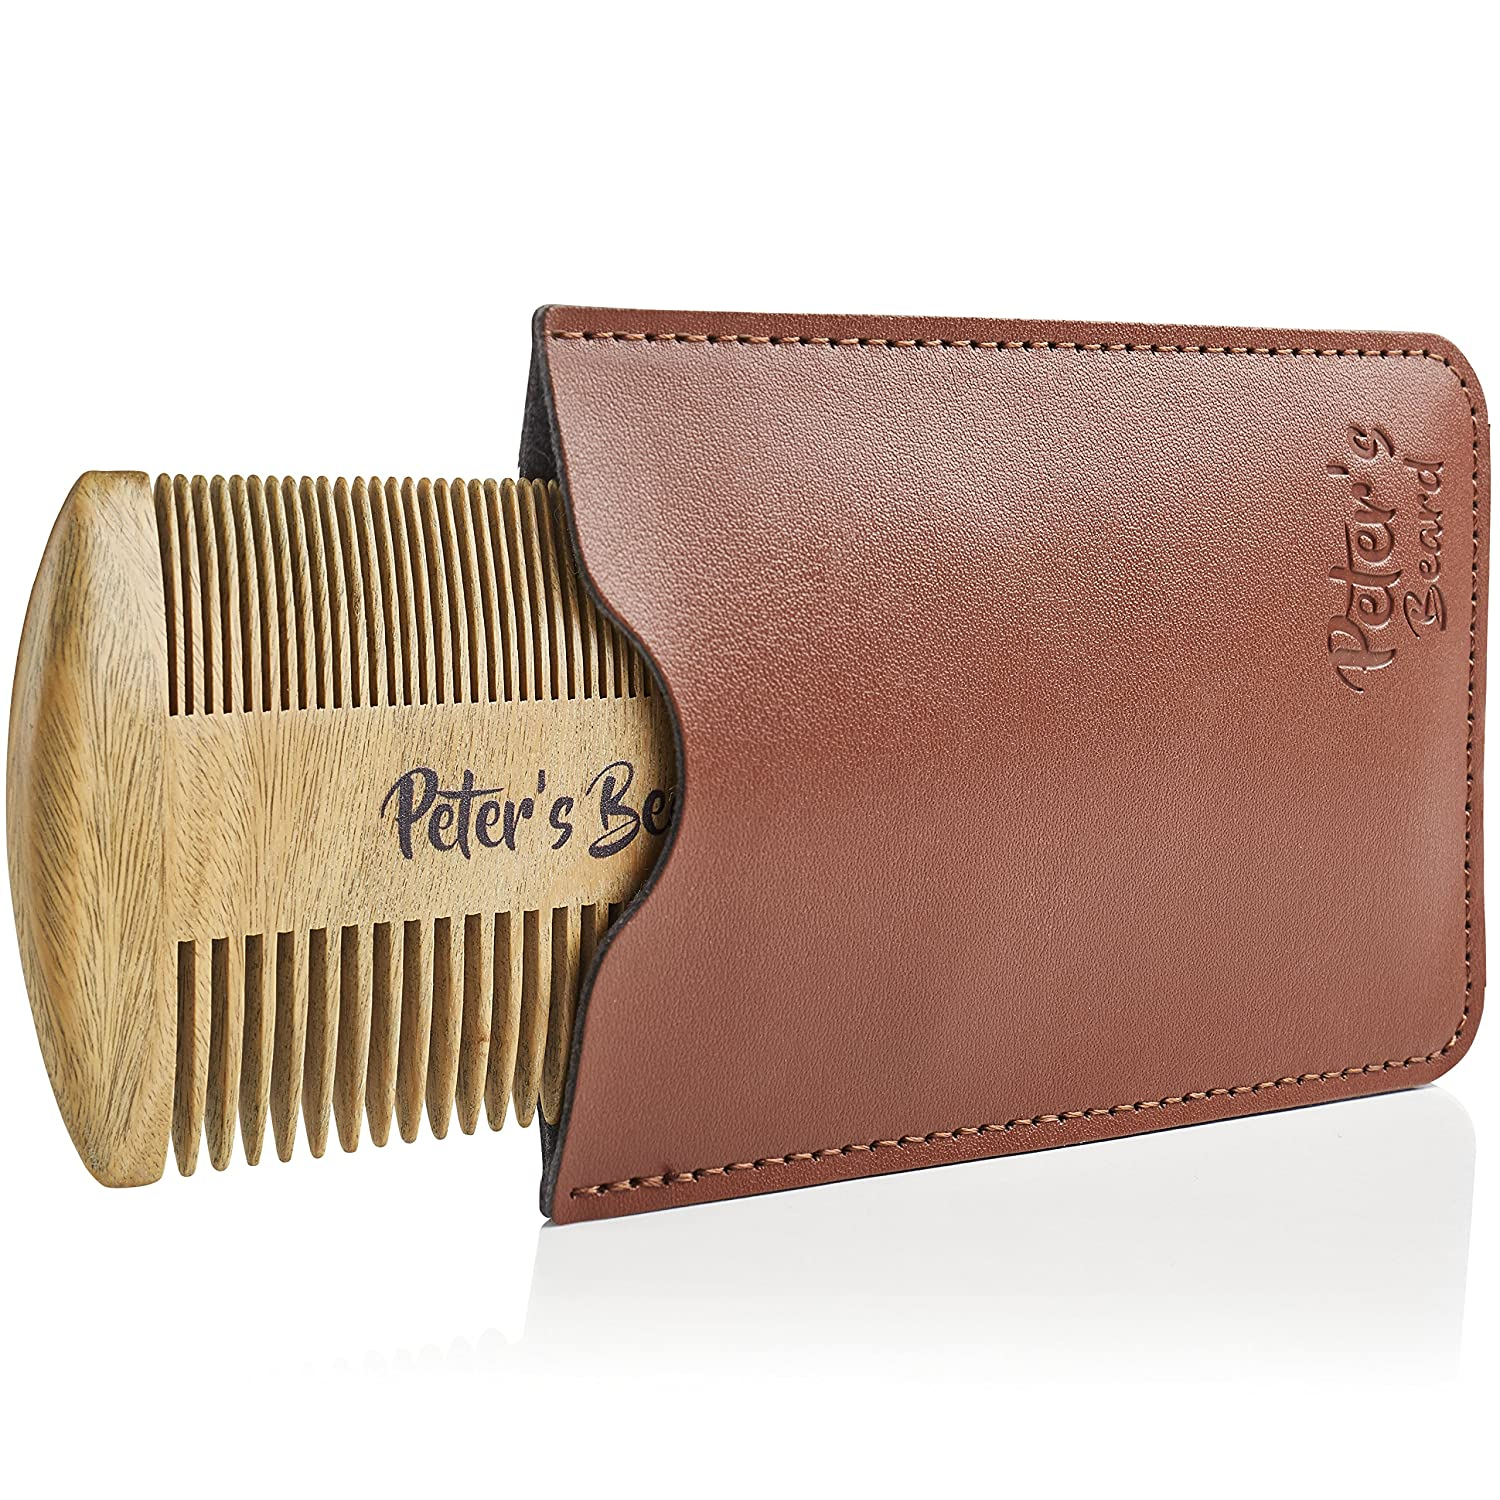 Beard Comb Wooden - Gift Set Small Wood Kit Brush Pocket Fine Dual Comb with Leather Case Pouch - Perfect with Beard Oil Balm Wax Scissors - Antistatic Comb for Men Presented in Deluxe Gift Box Peter's Beard